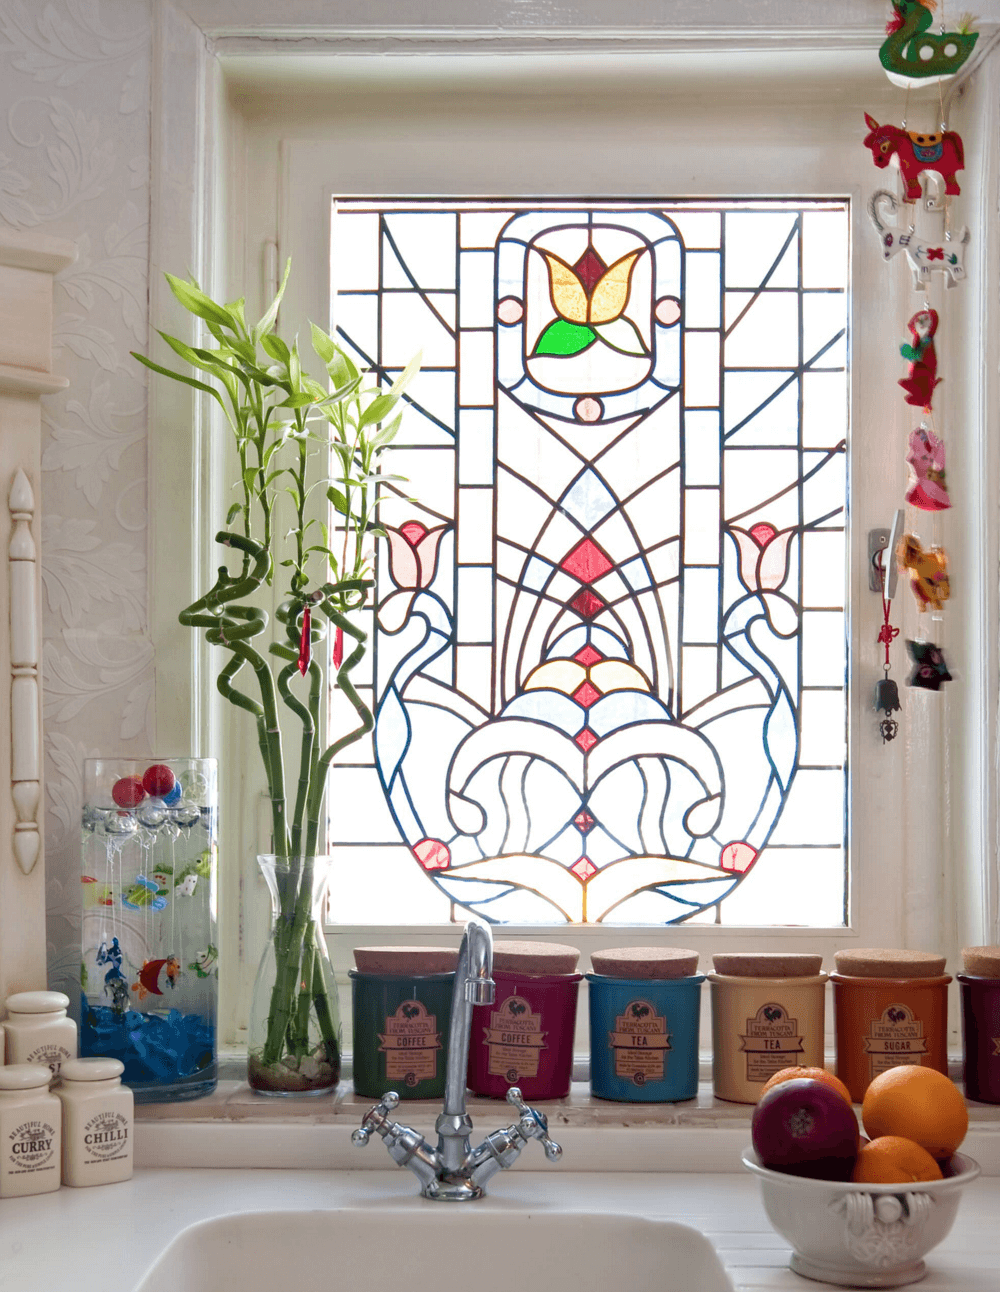 colorful stained glass window is private and bold, it keeps privacy giving a slight vintage feel to the space